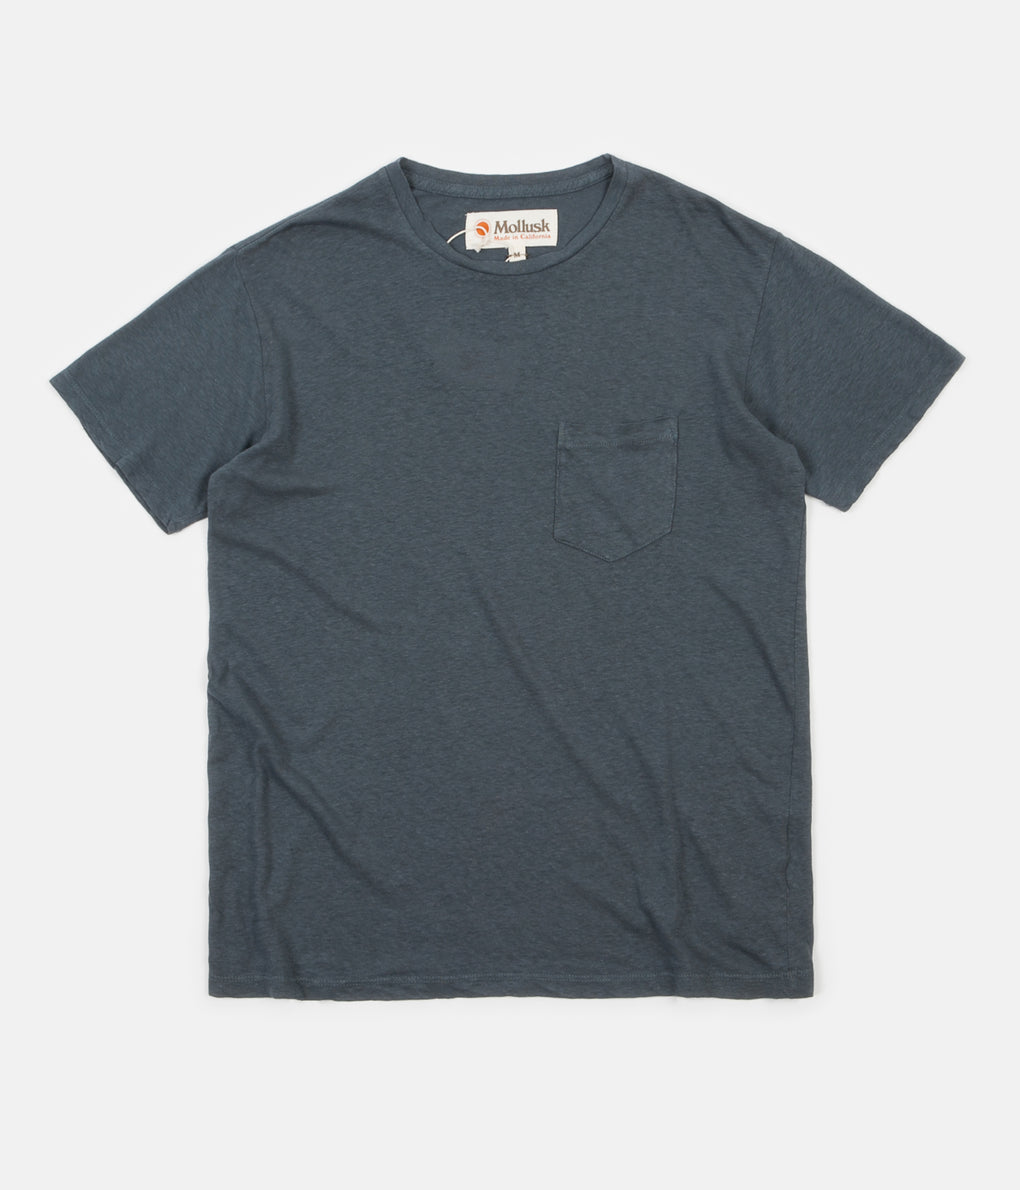 Mollusk Hemp Pocket T-Shirt - Dull Indigo